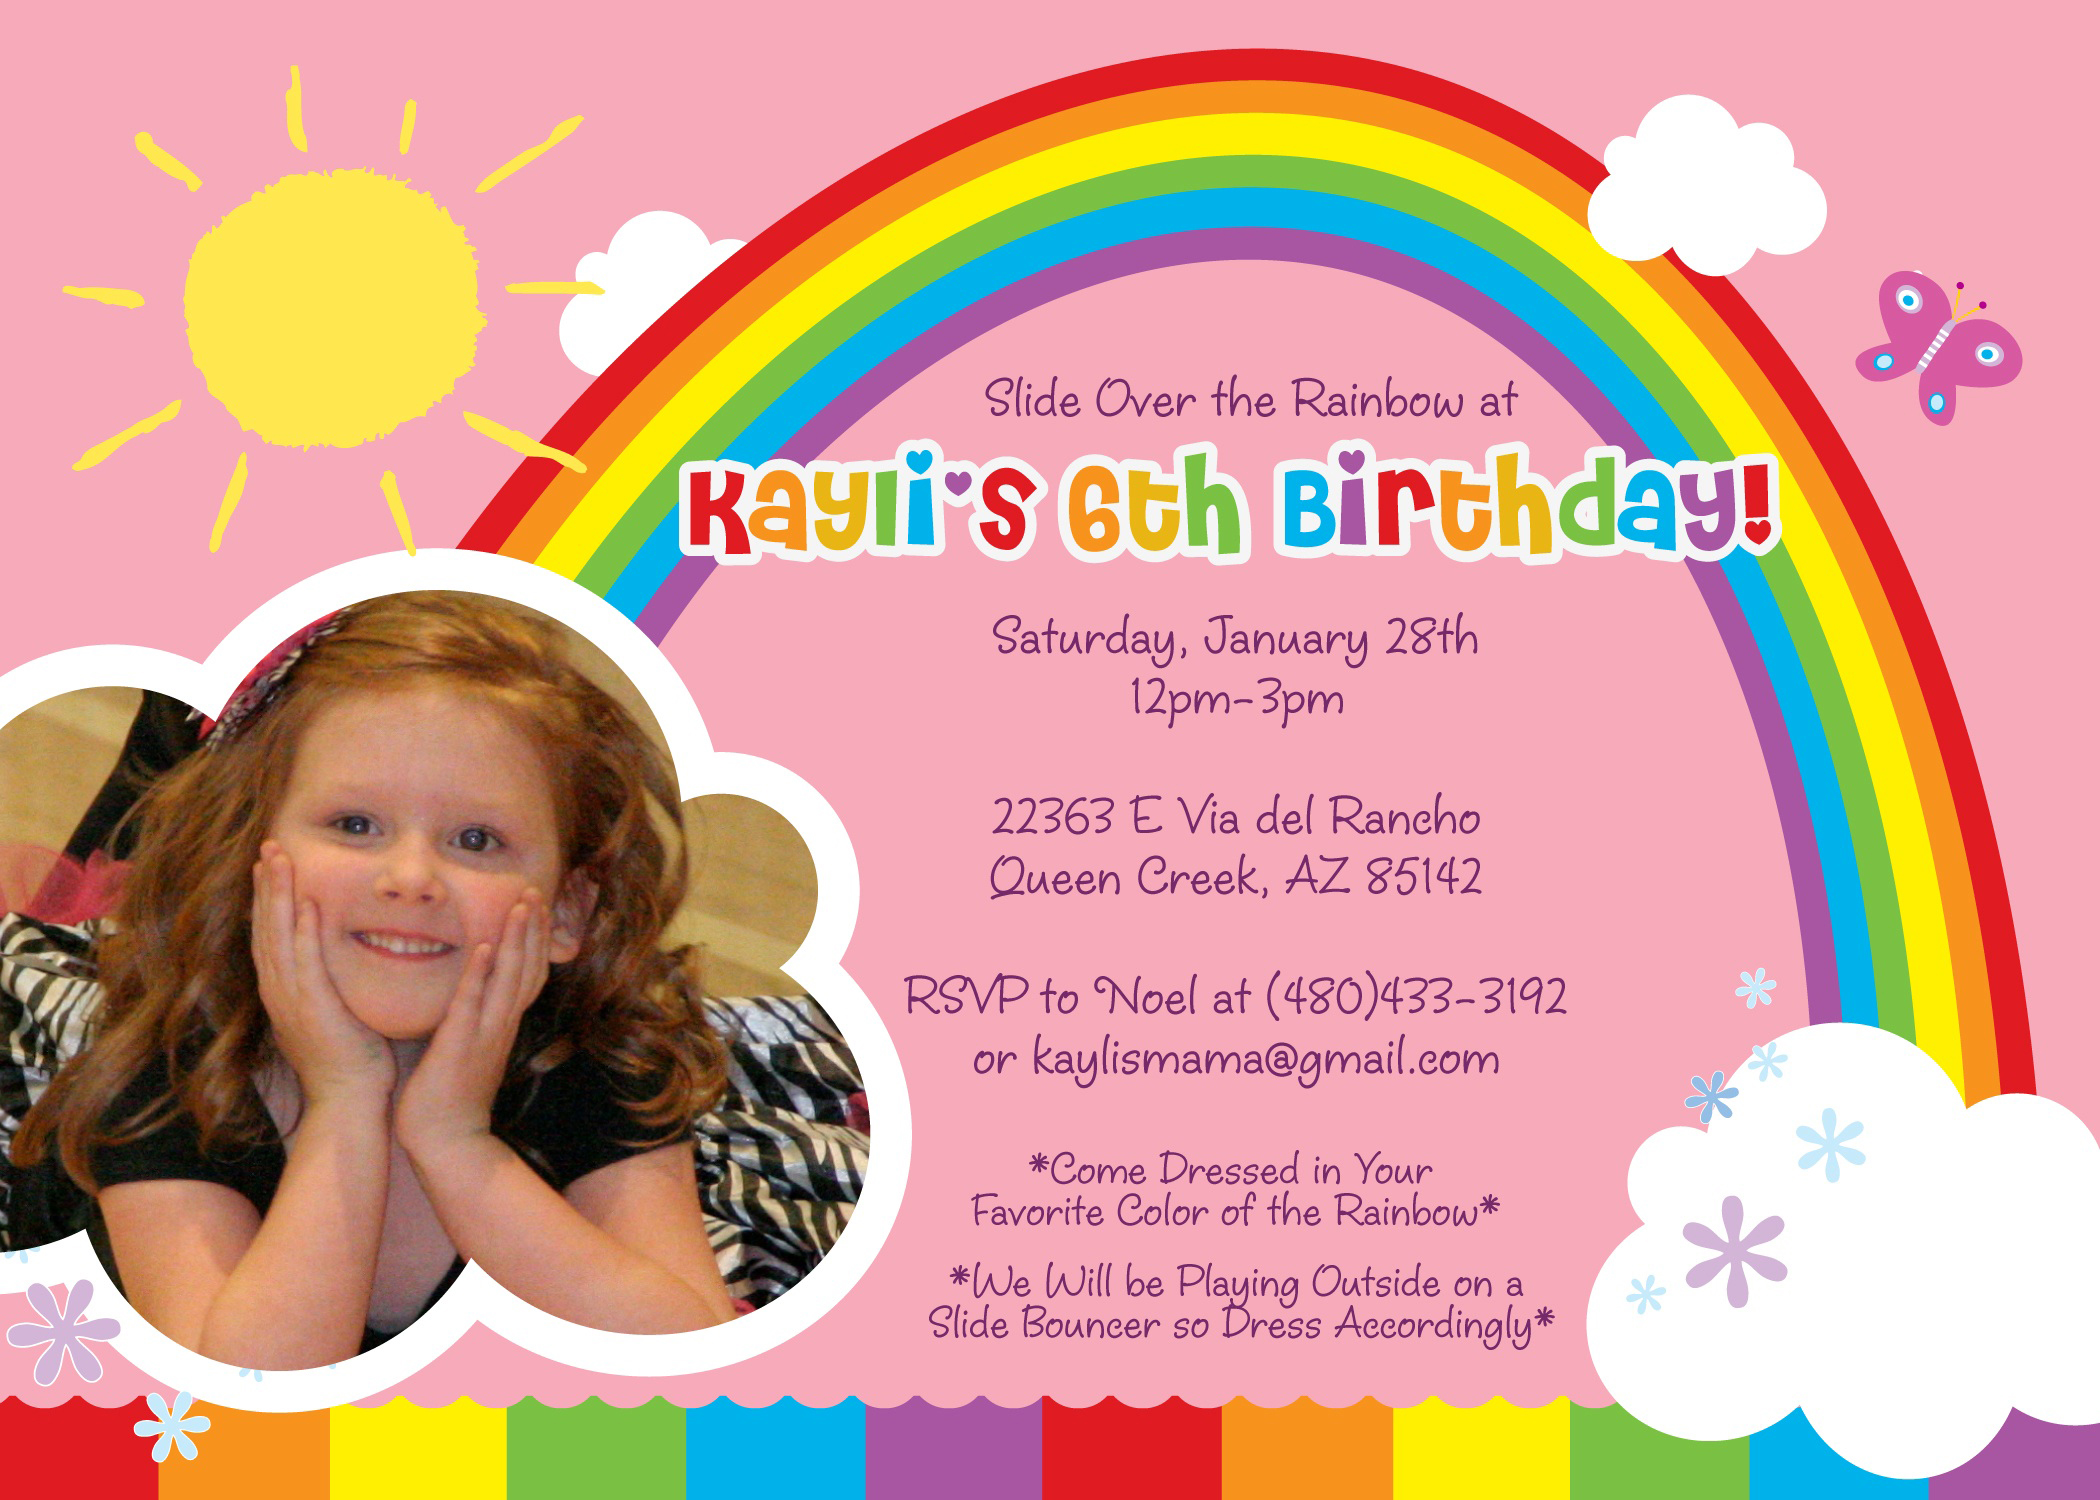 birthday invitation card themes ; Birthday-Party-Invitation-Letter-For-Kids-to-get-ideas-how-to-make-your-own-birthday-Invitation-design-4